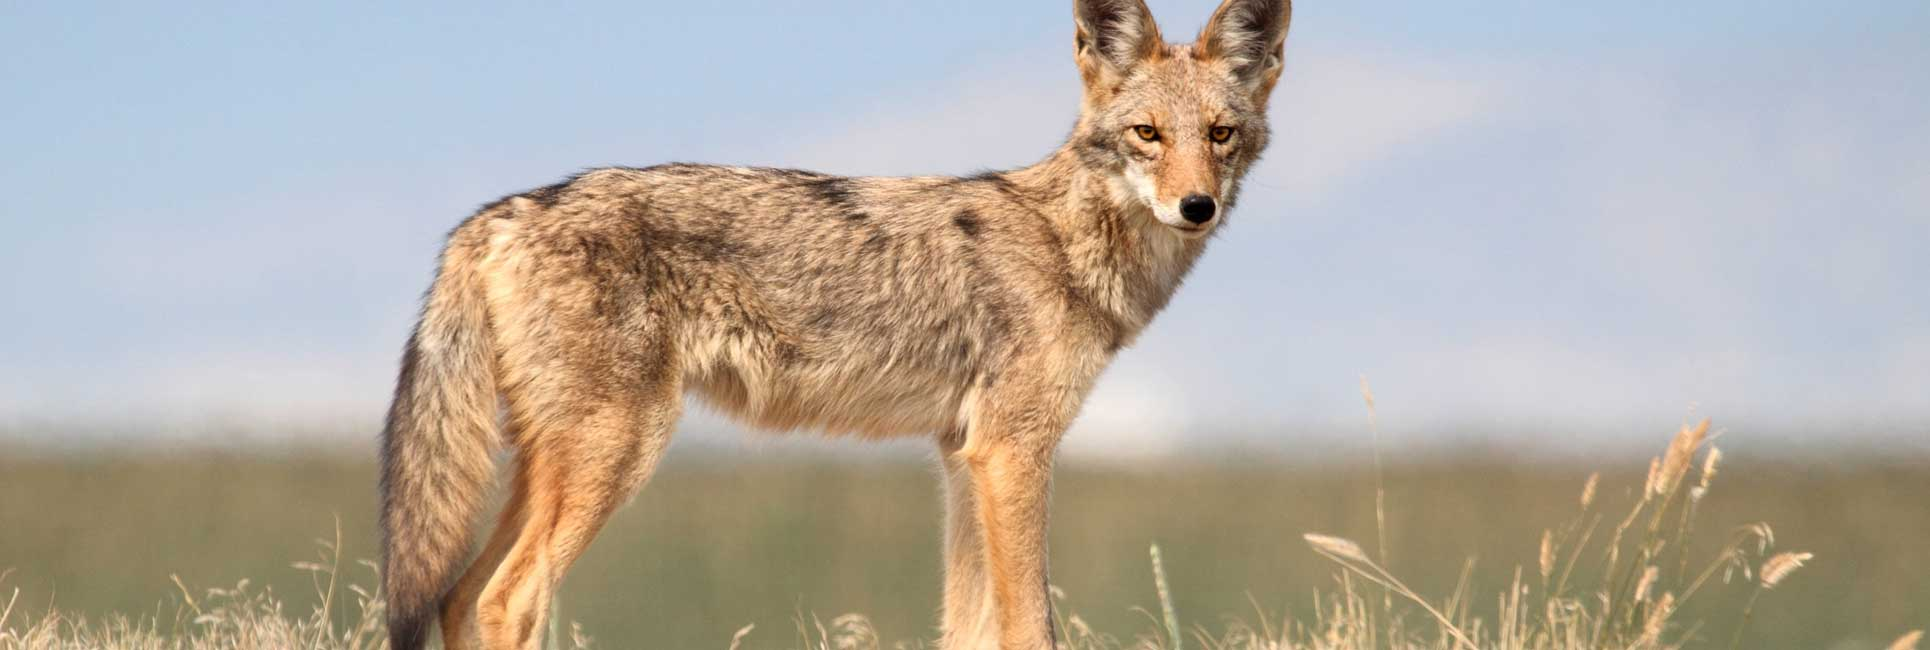 coyote standing in field spotted while coyote hunting